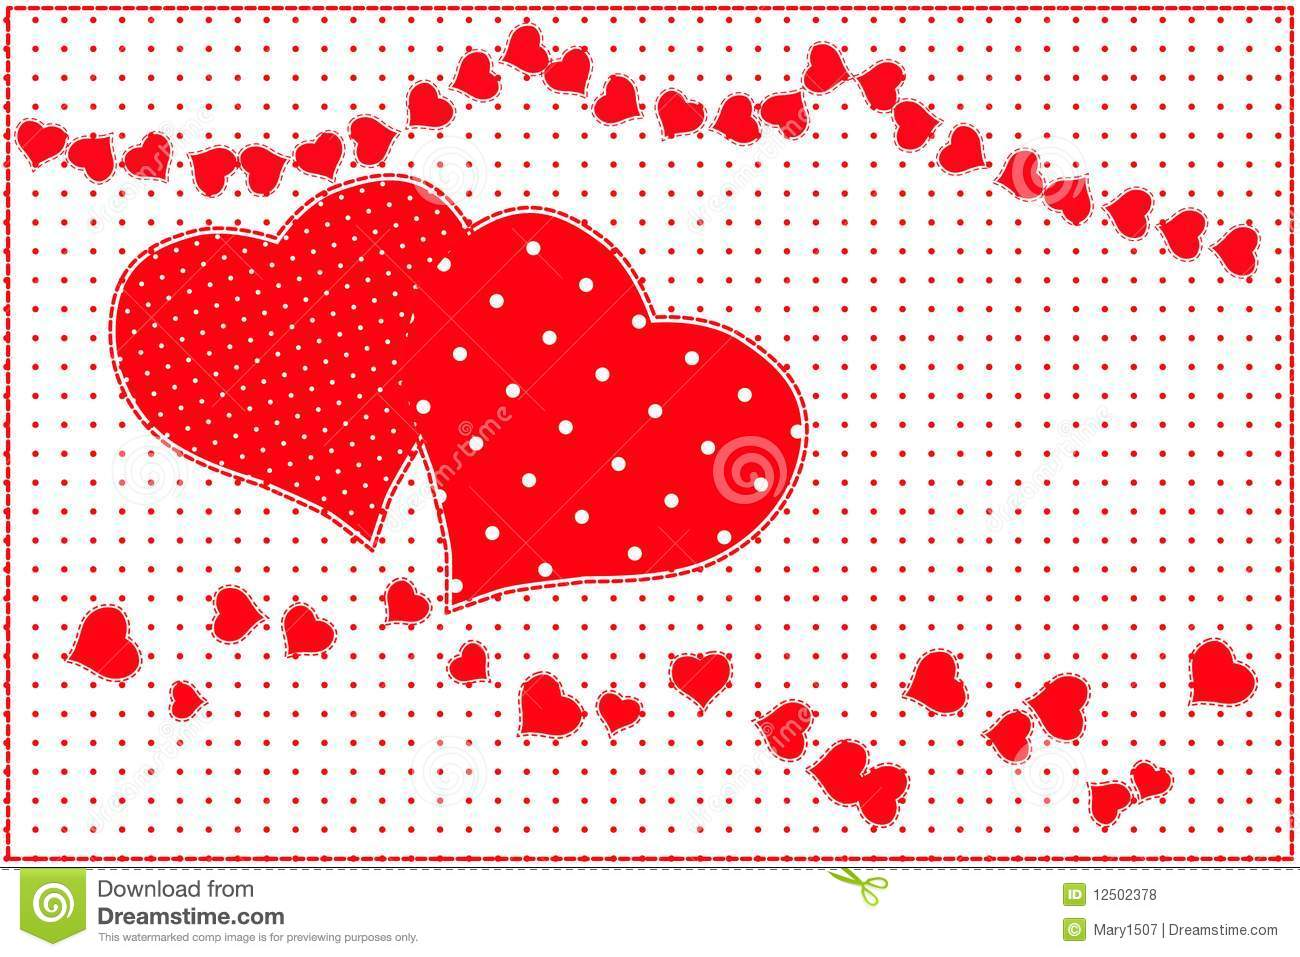 Red Heart Pattern Royalty Free Stock Photos Image 12502378